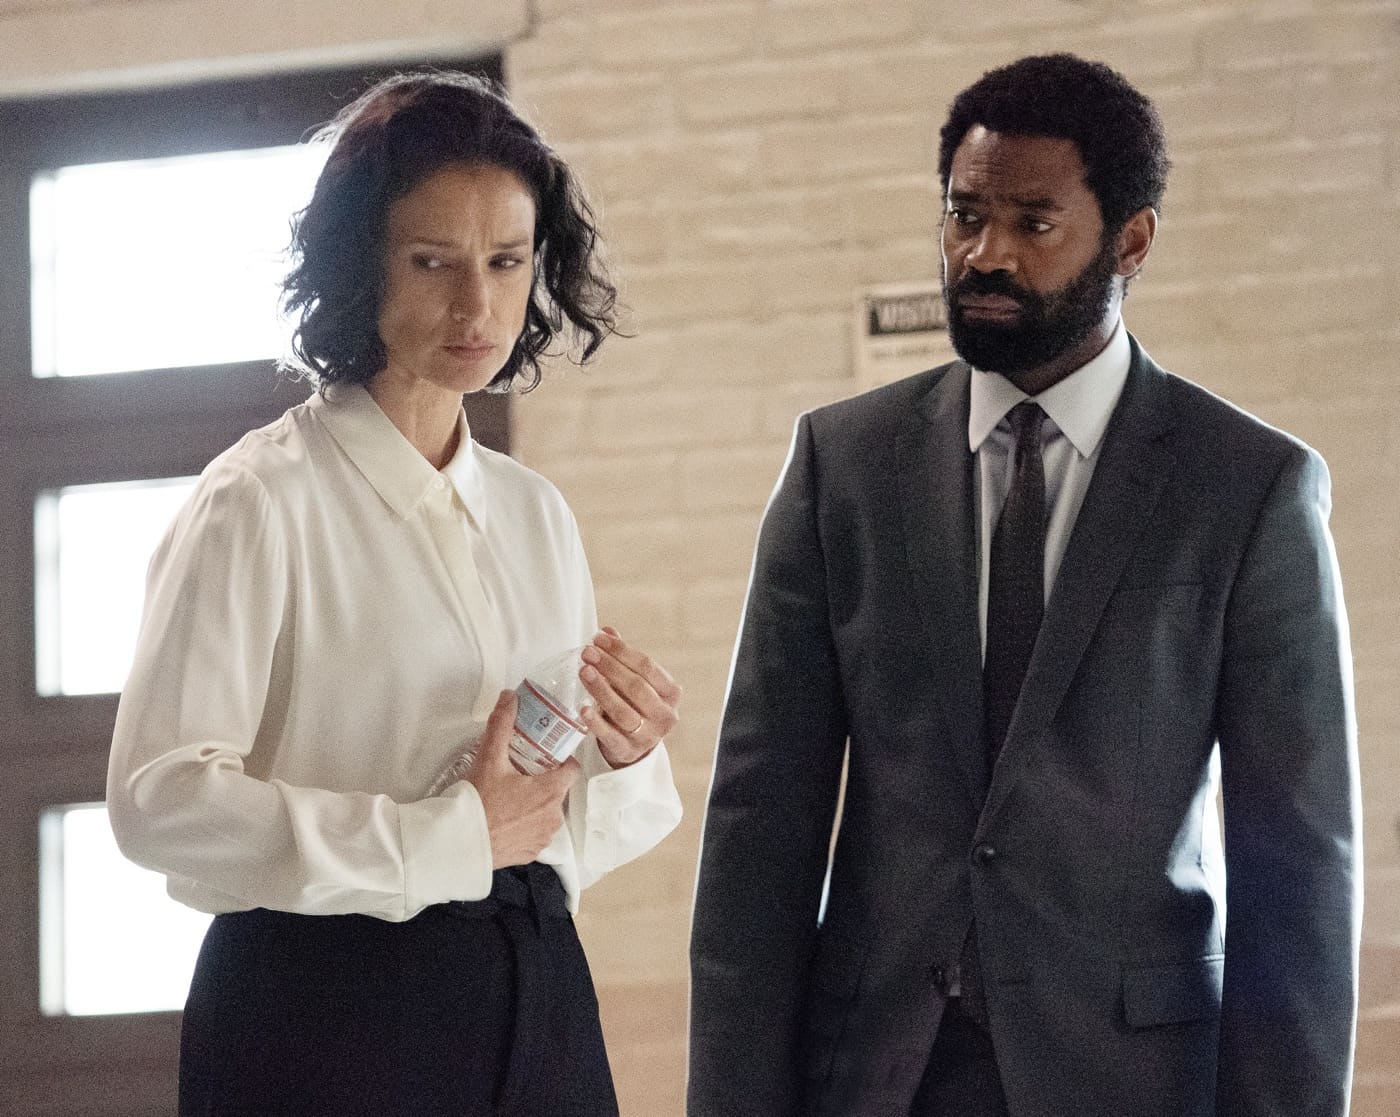 FOR LIFE Season 2 Episode 6 INDIRA VARMA, NICHOLAS PINNOCK